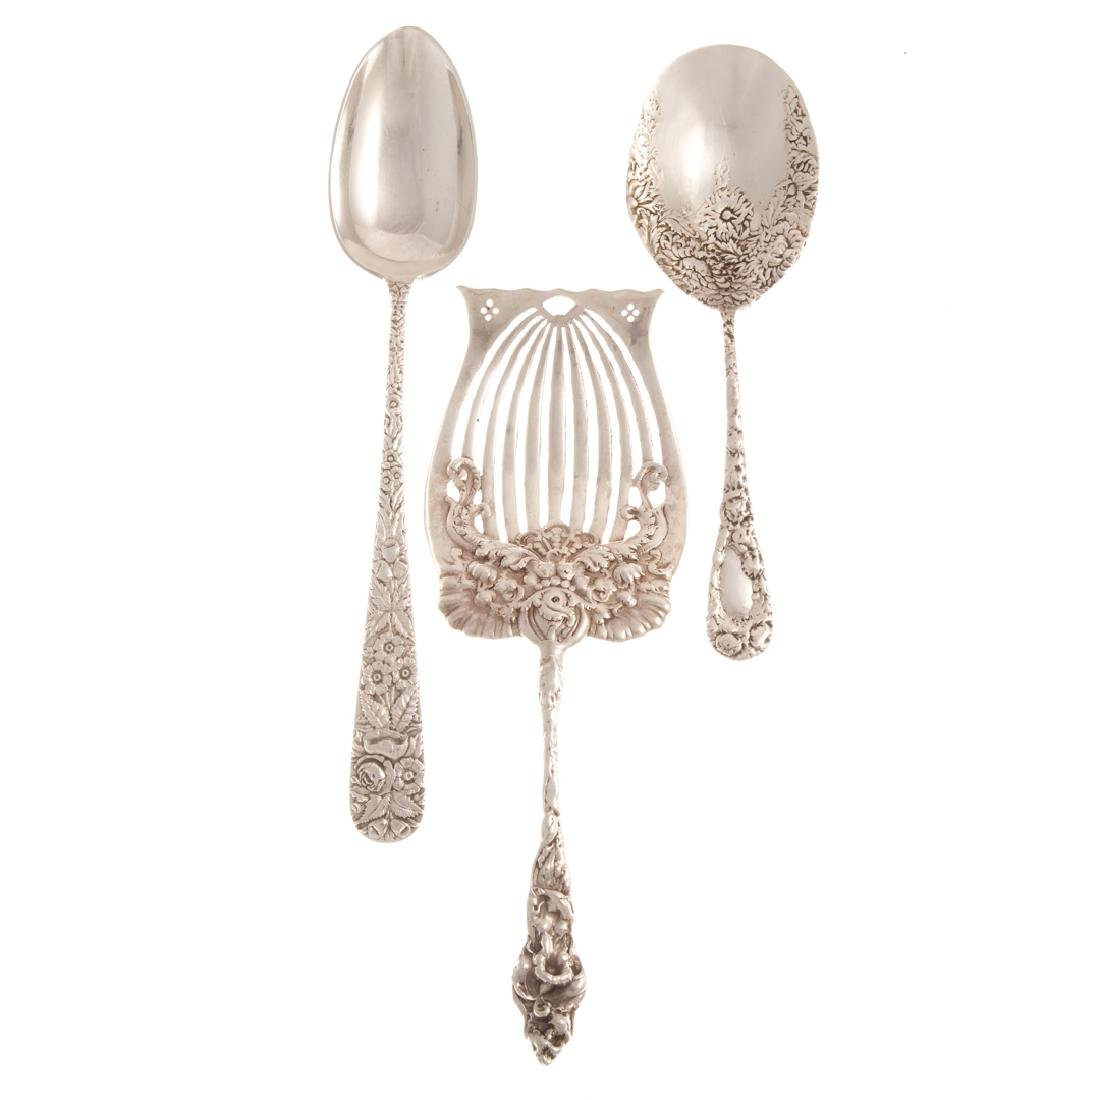 A Trio of silver serving pieces